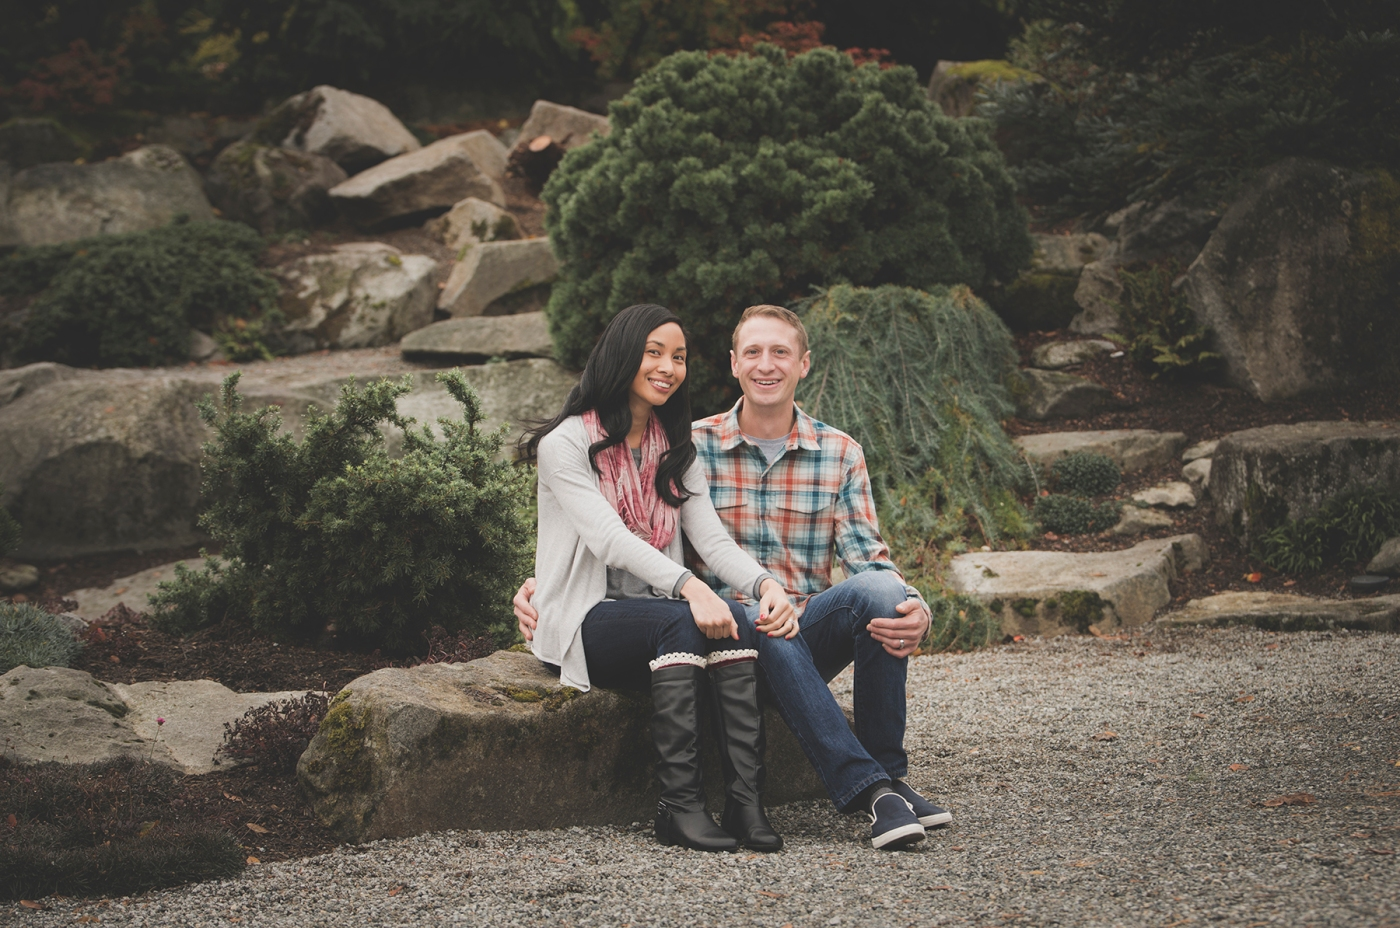 jane-speleers-photography-ju-bri-holiday-october-bellevue-botanical-garden-engagement-2016_dsc_5619